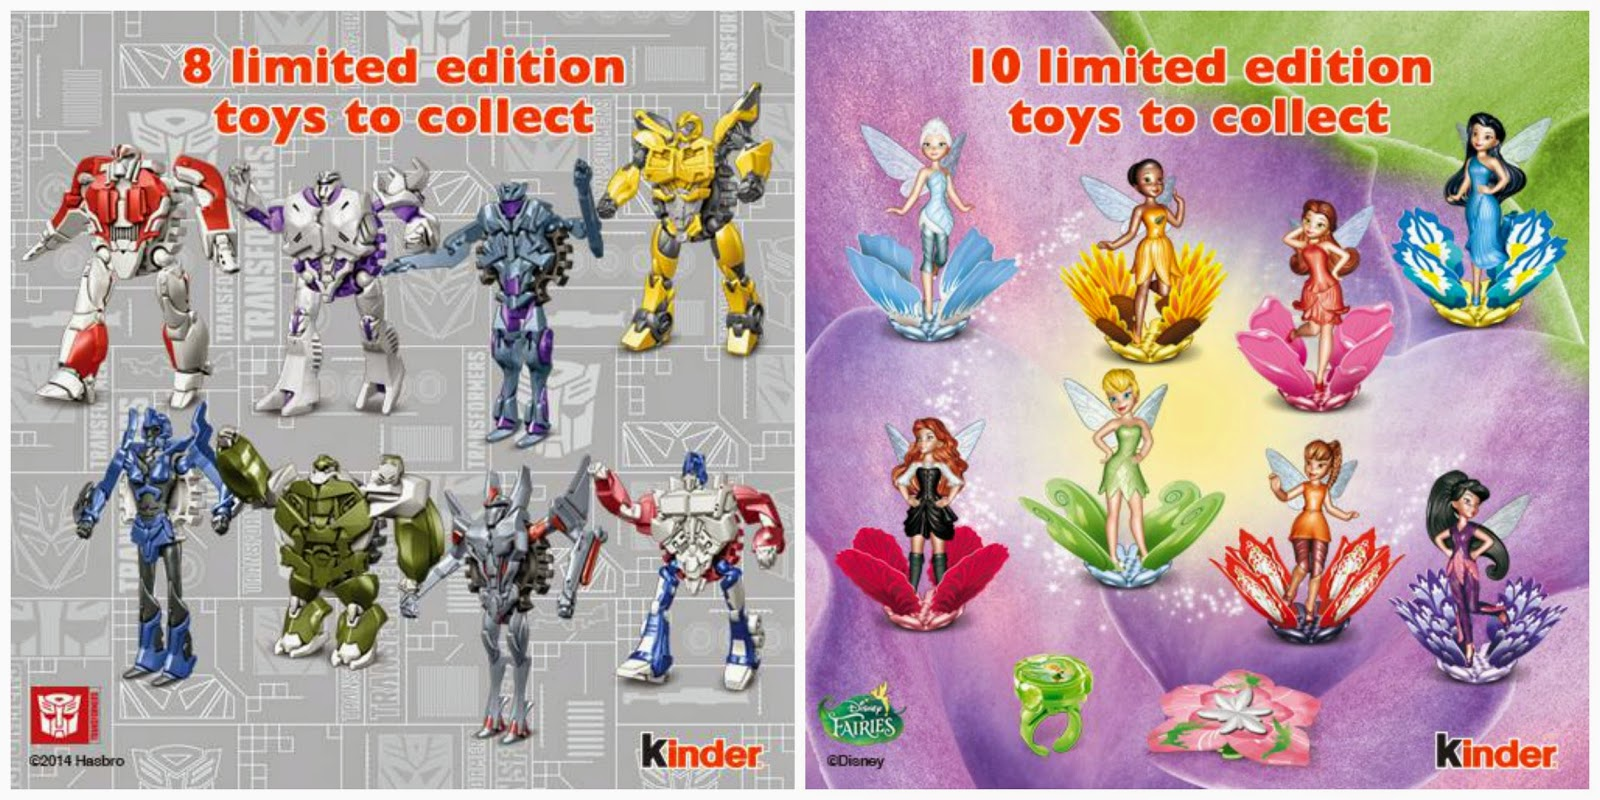 Kinder toys Transformers Disney Fairies